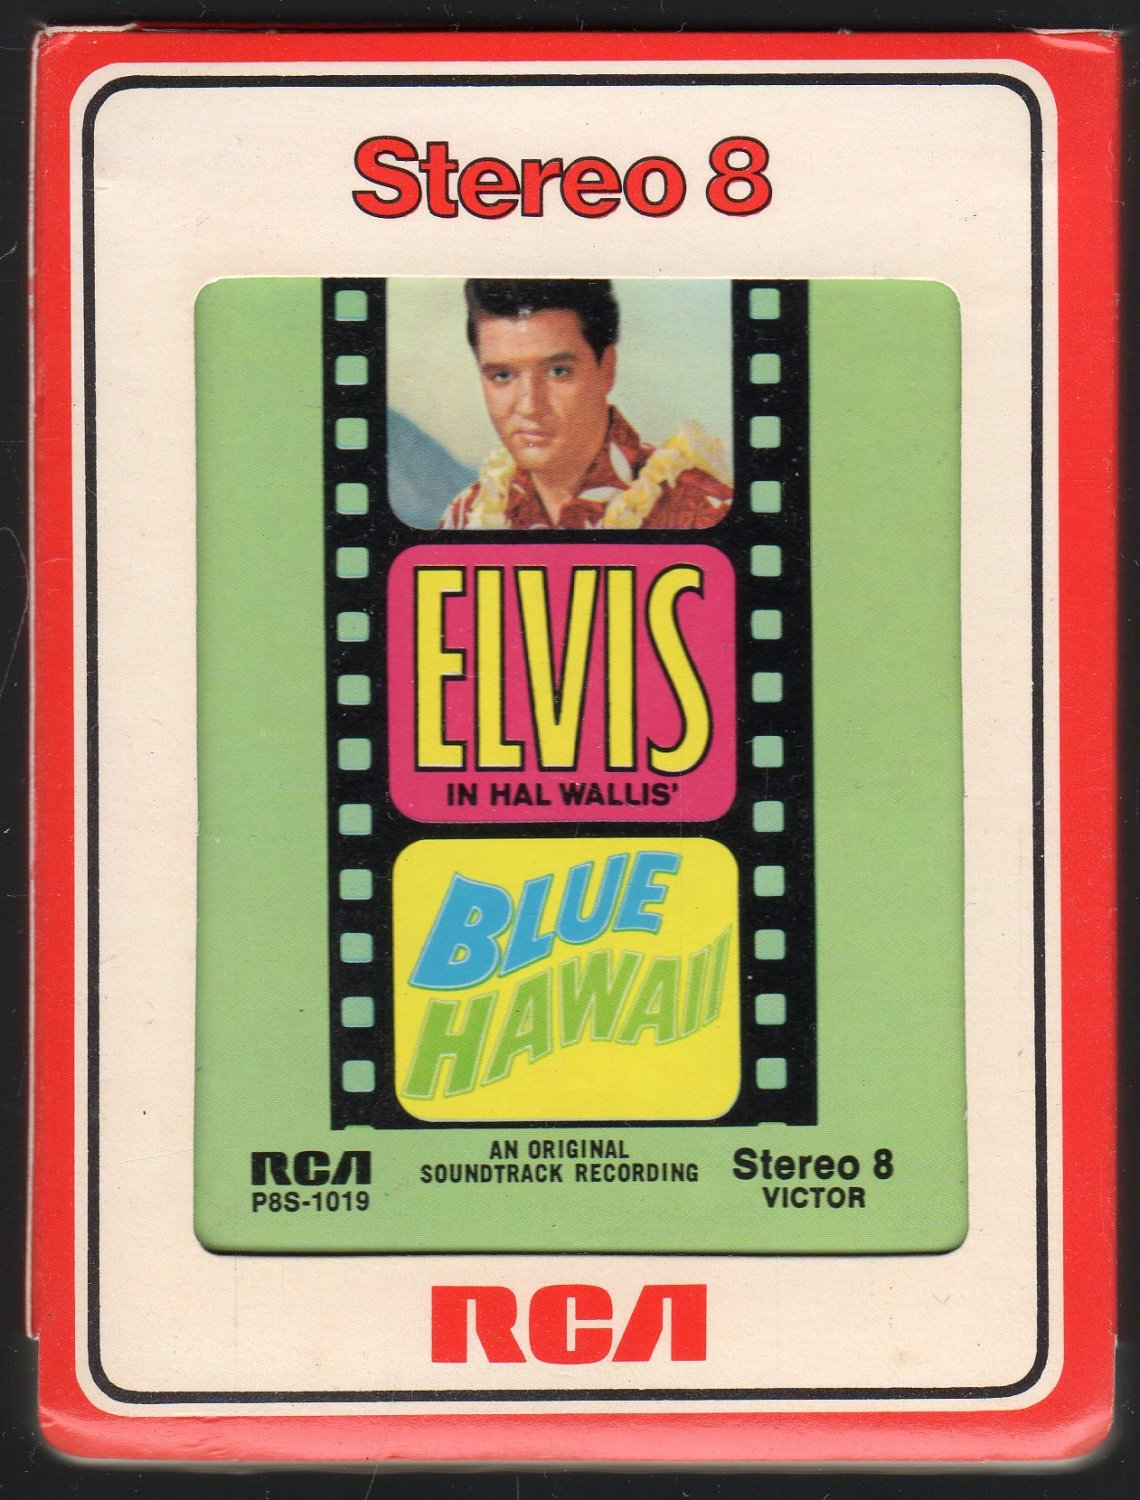 Elvis Presley - Blue Hawaii 1961 RCA 1972 Re-issue A11 8-track tape